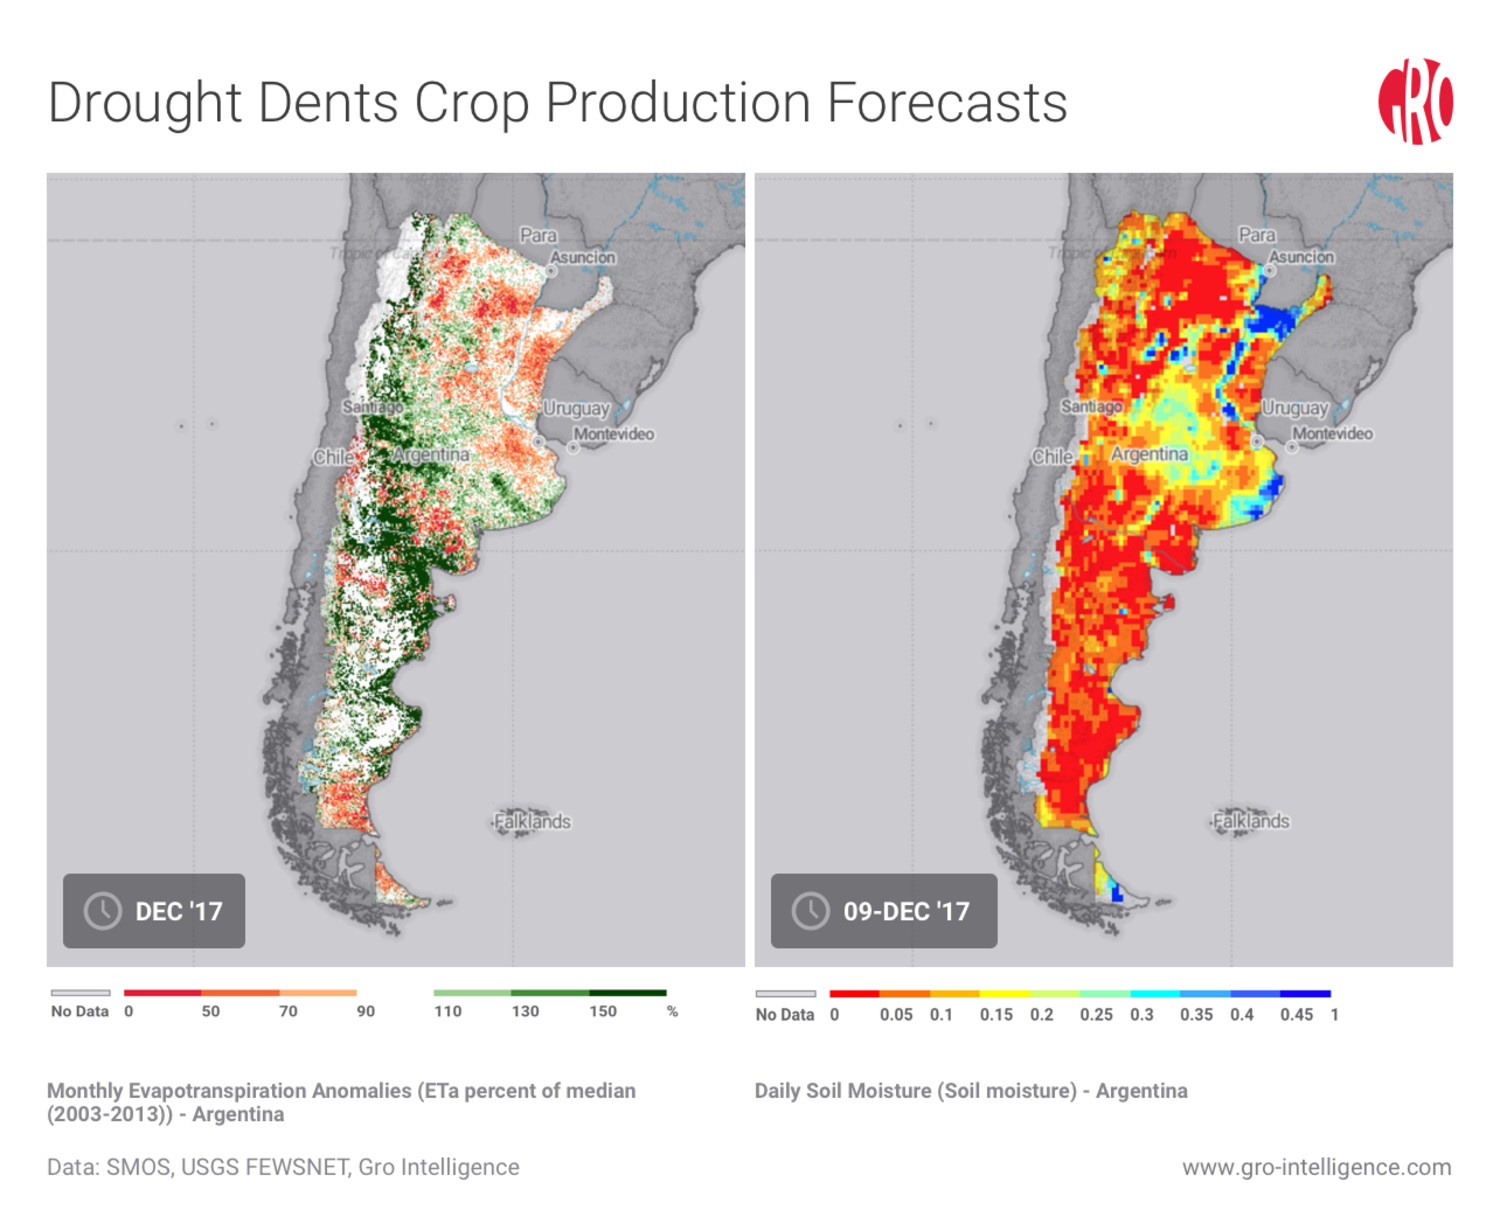 Drought Dents Crop Production Forecasts